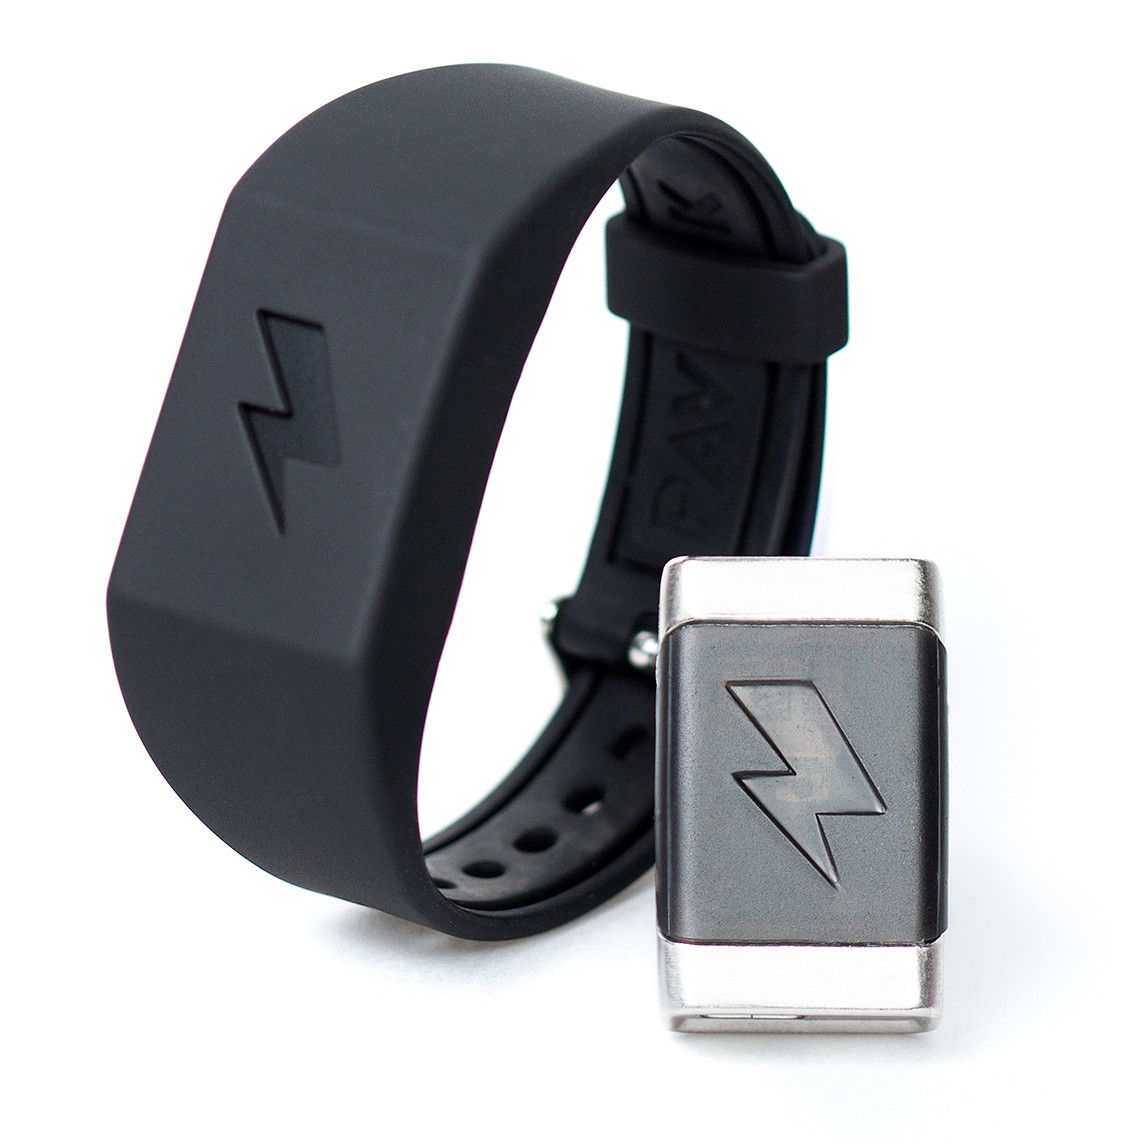 Pavlok Helps Athletes Workout Better And Get Rid Of Bad Habits